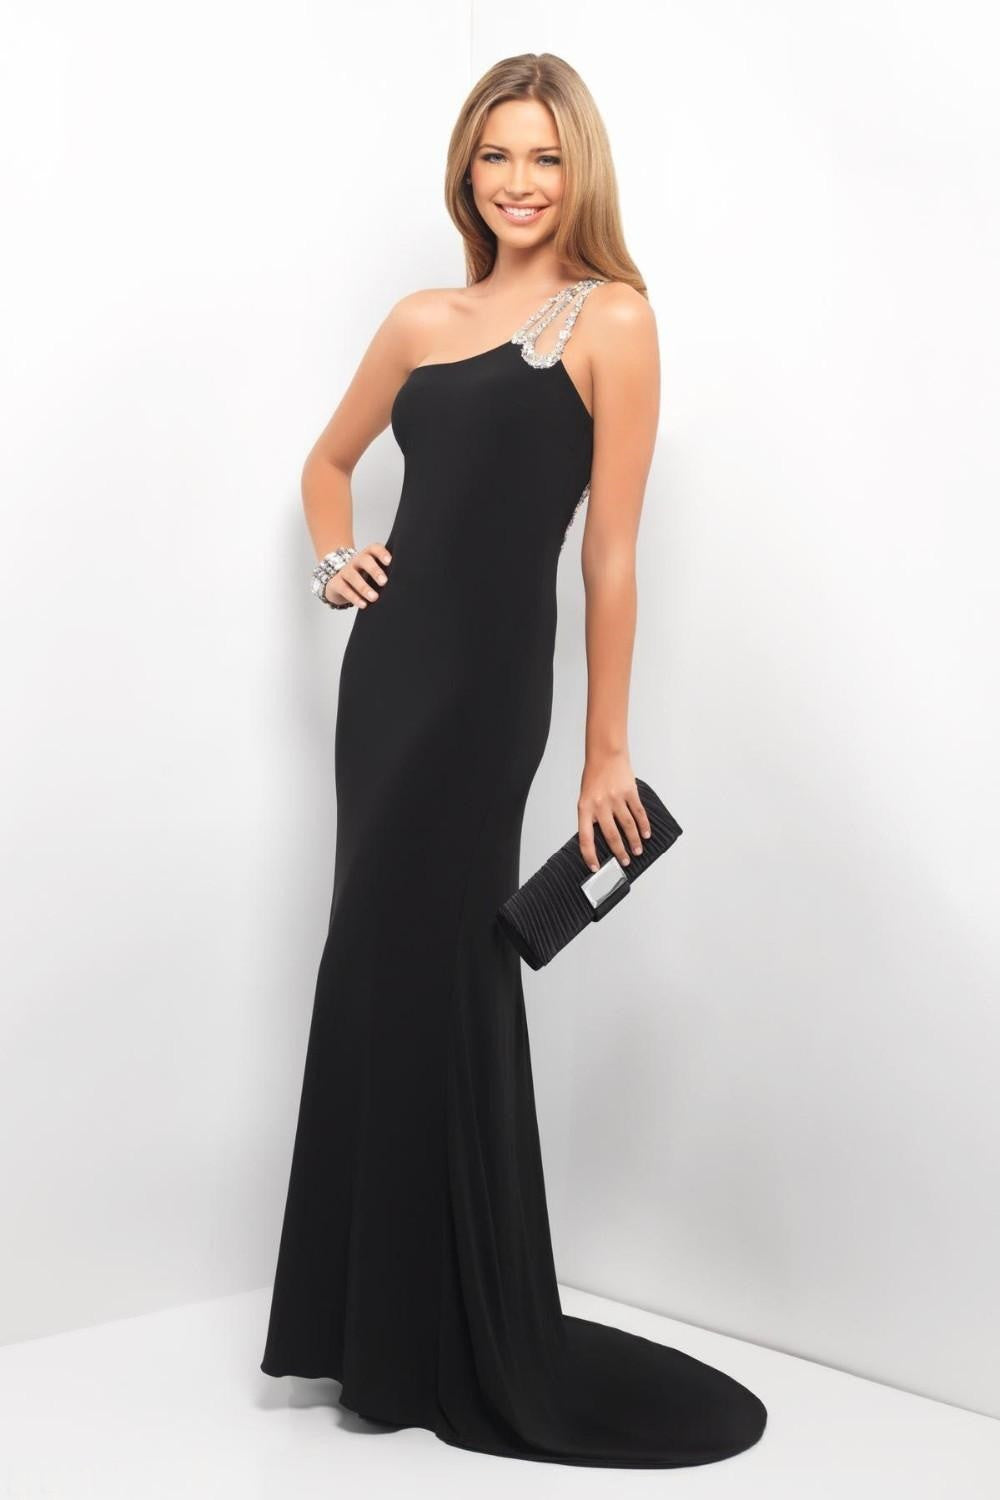 Black Mermaid With Simple Floor-Length Court Train Prom Dress